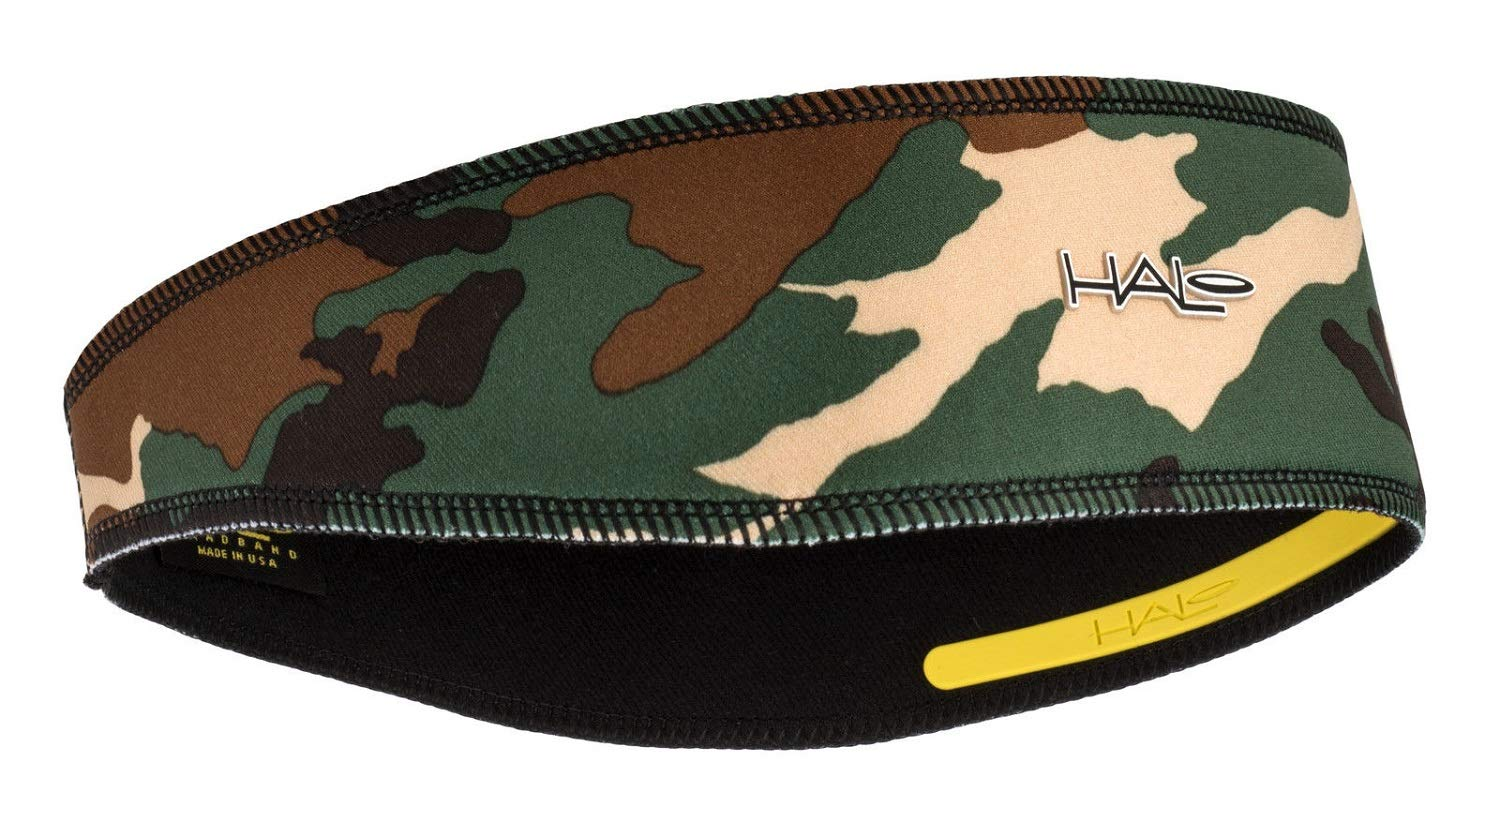 Halo II Headband Sweatband Pullover Camo Green by Halo Headbands